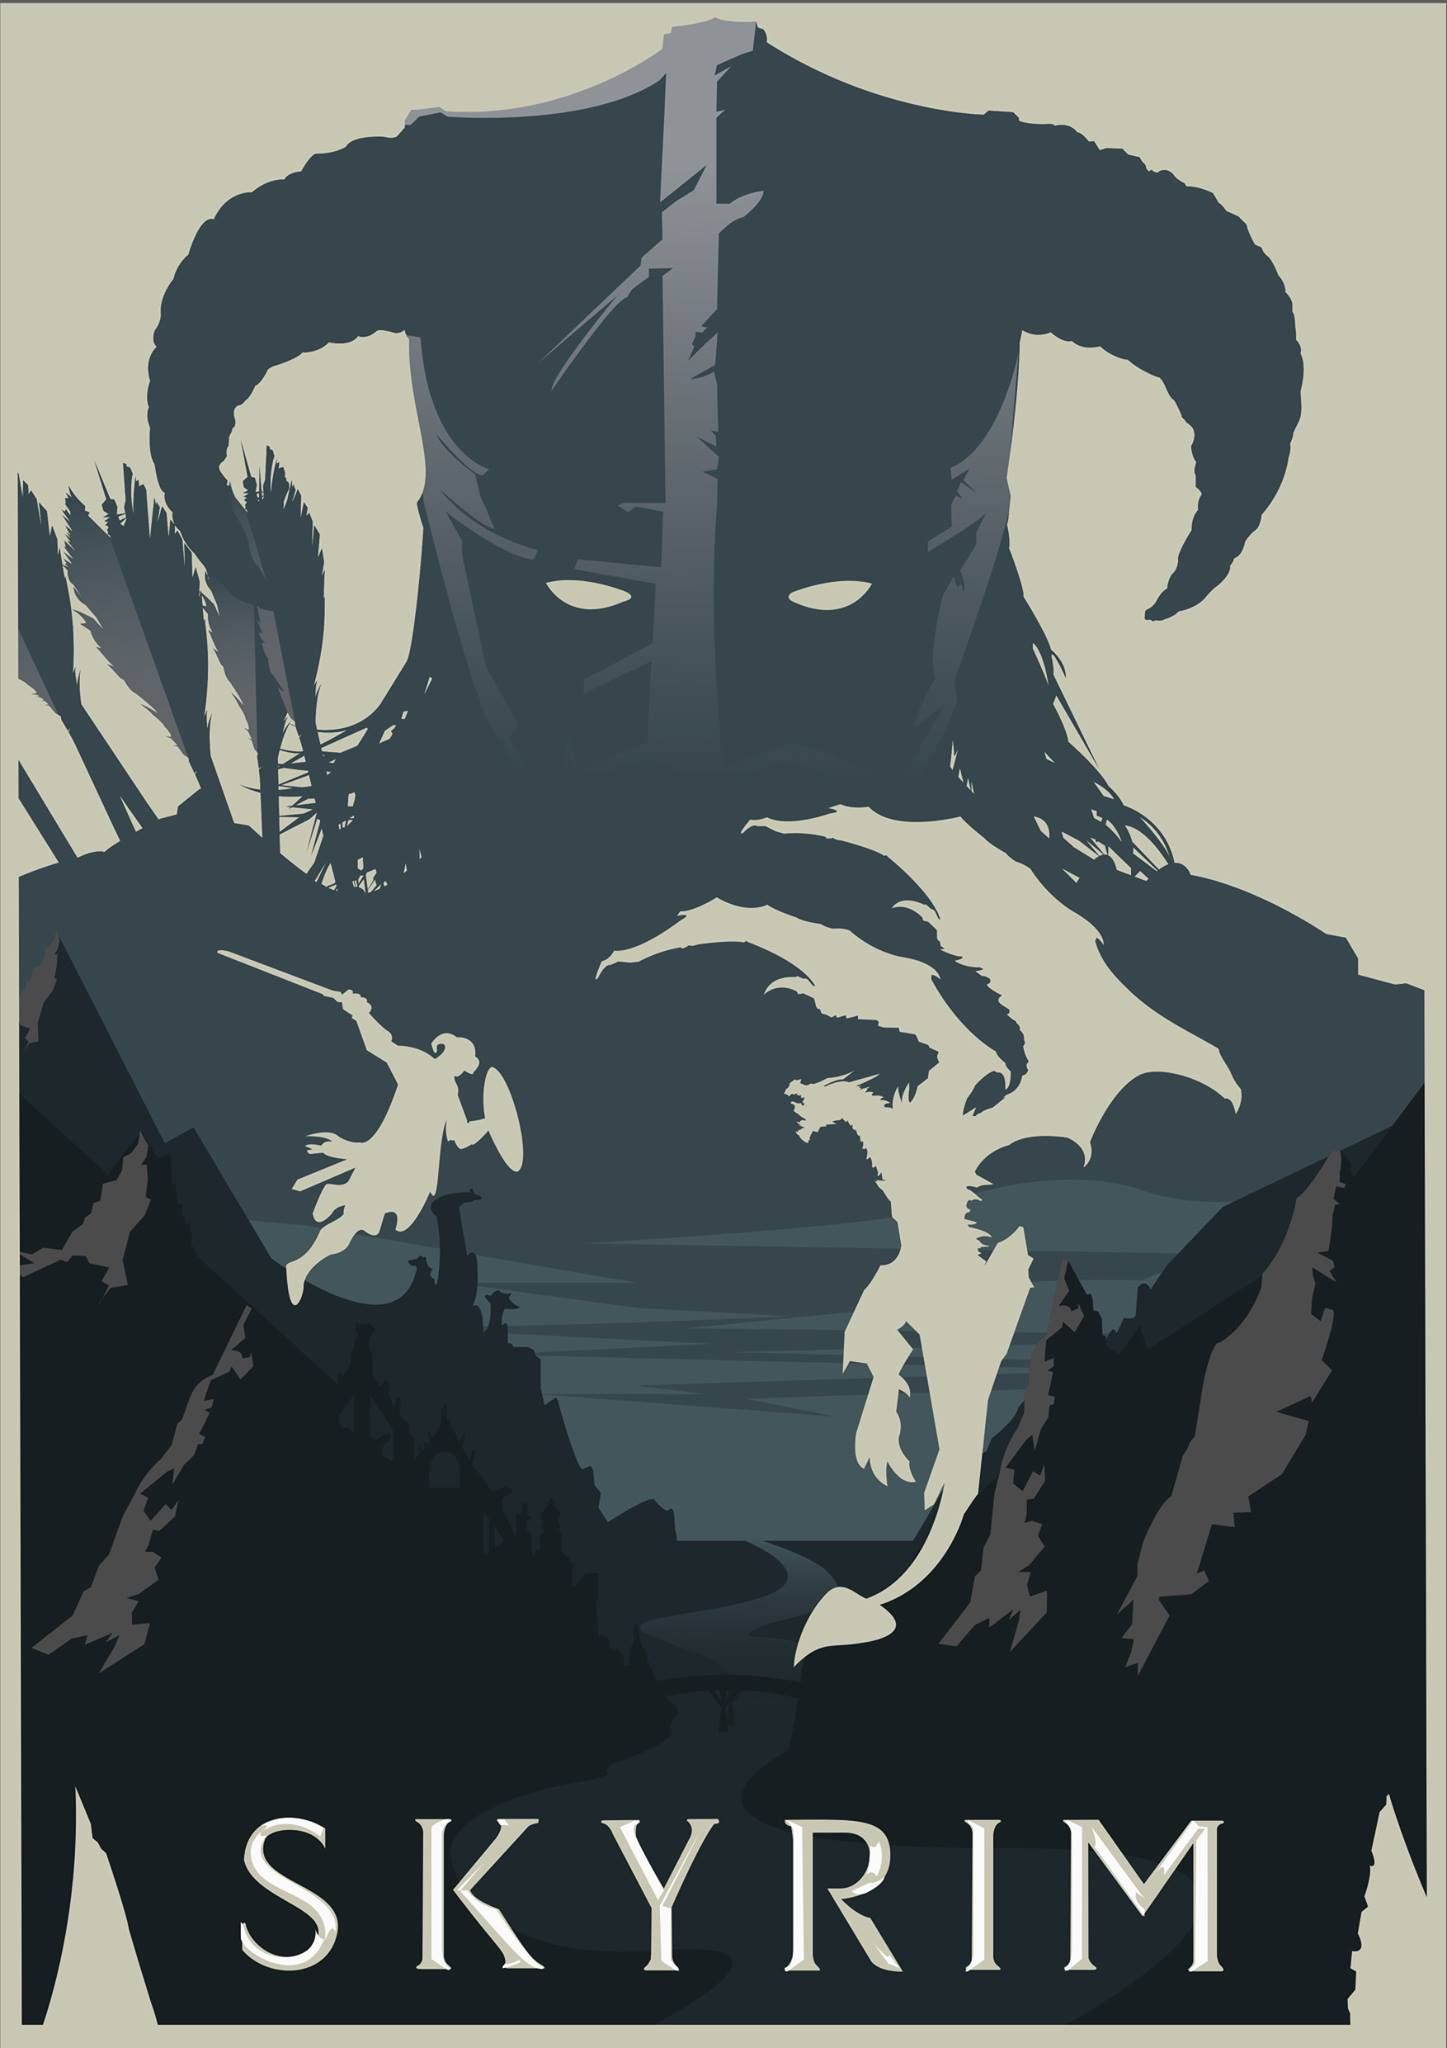 Skyrim Poster The Elder Scrolls V Skyrim Dragonborn Game Art A2 A3